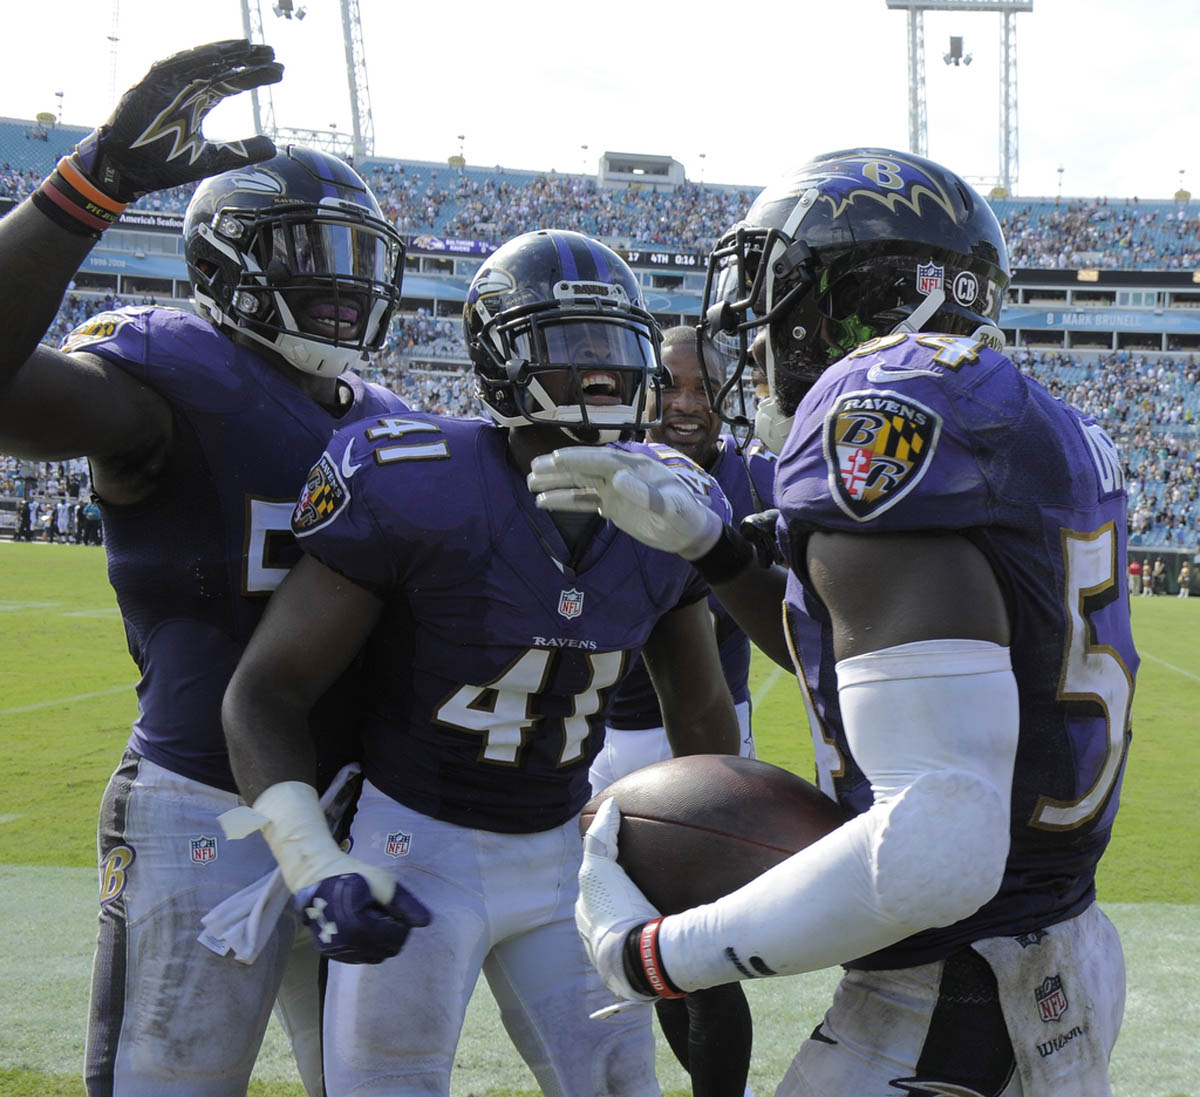 Rough Cut: A raw edit from Ravens win over Jaguars